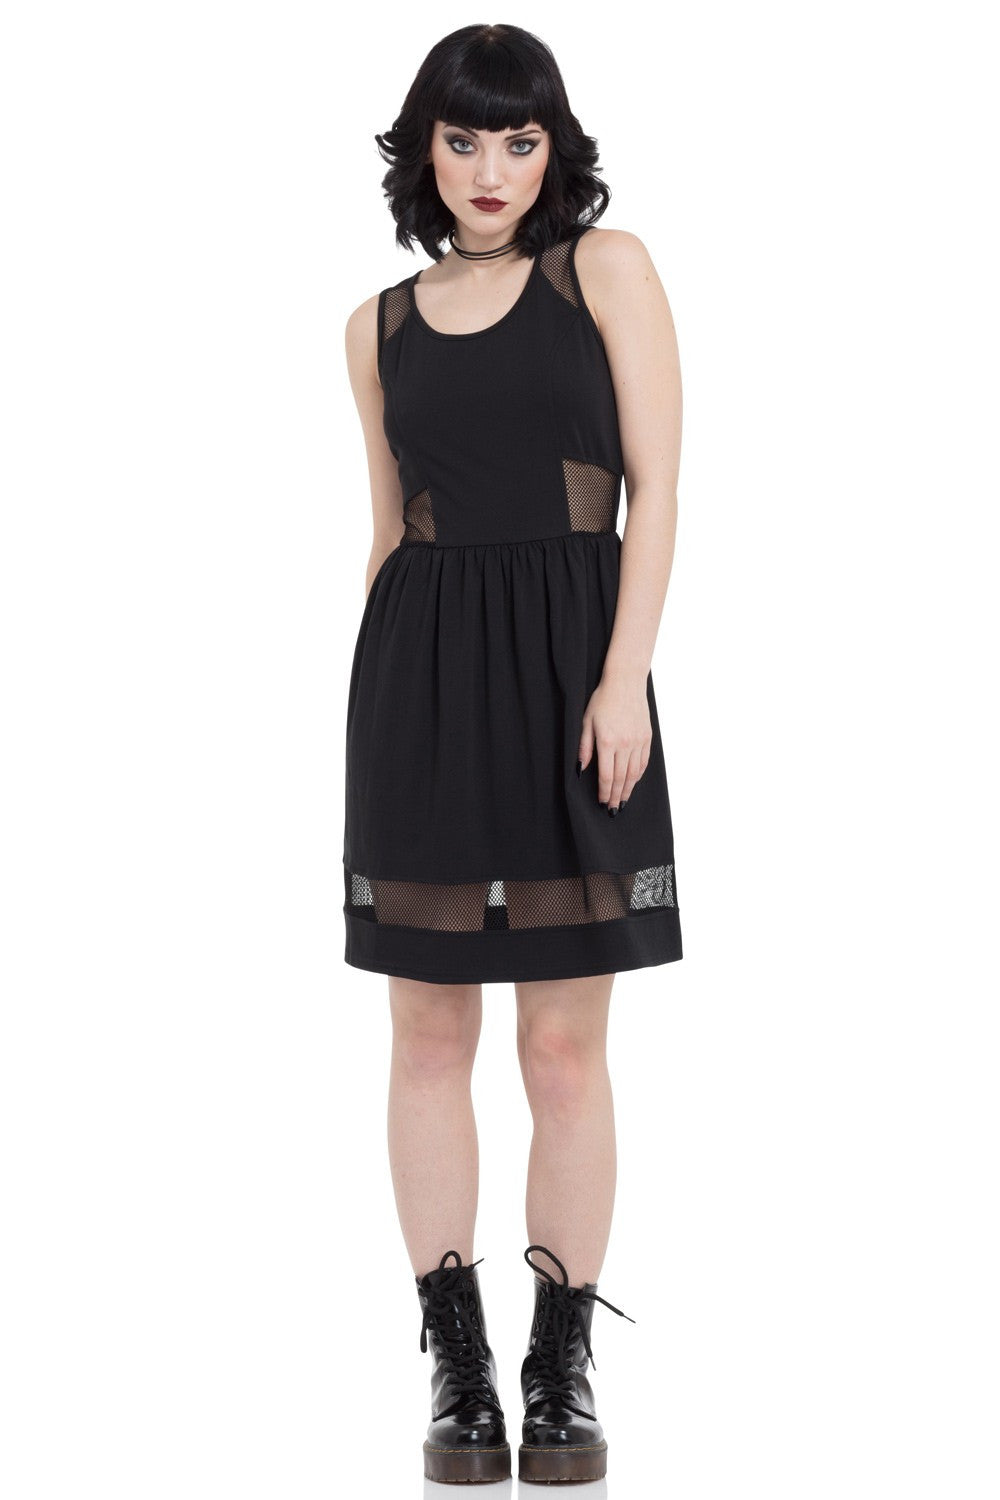 DRA8361 Net Dress